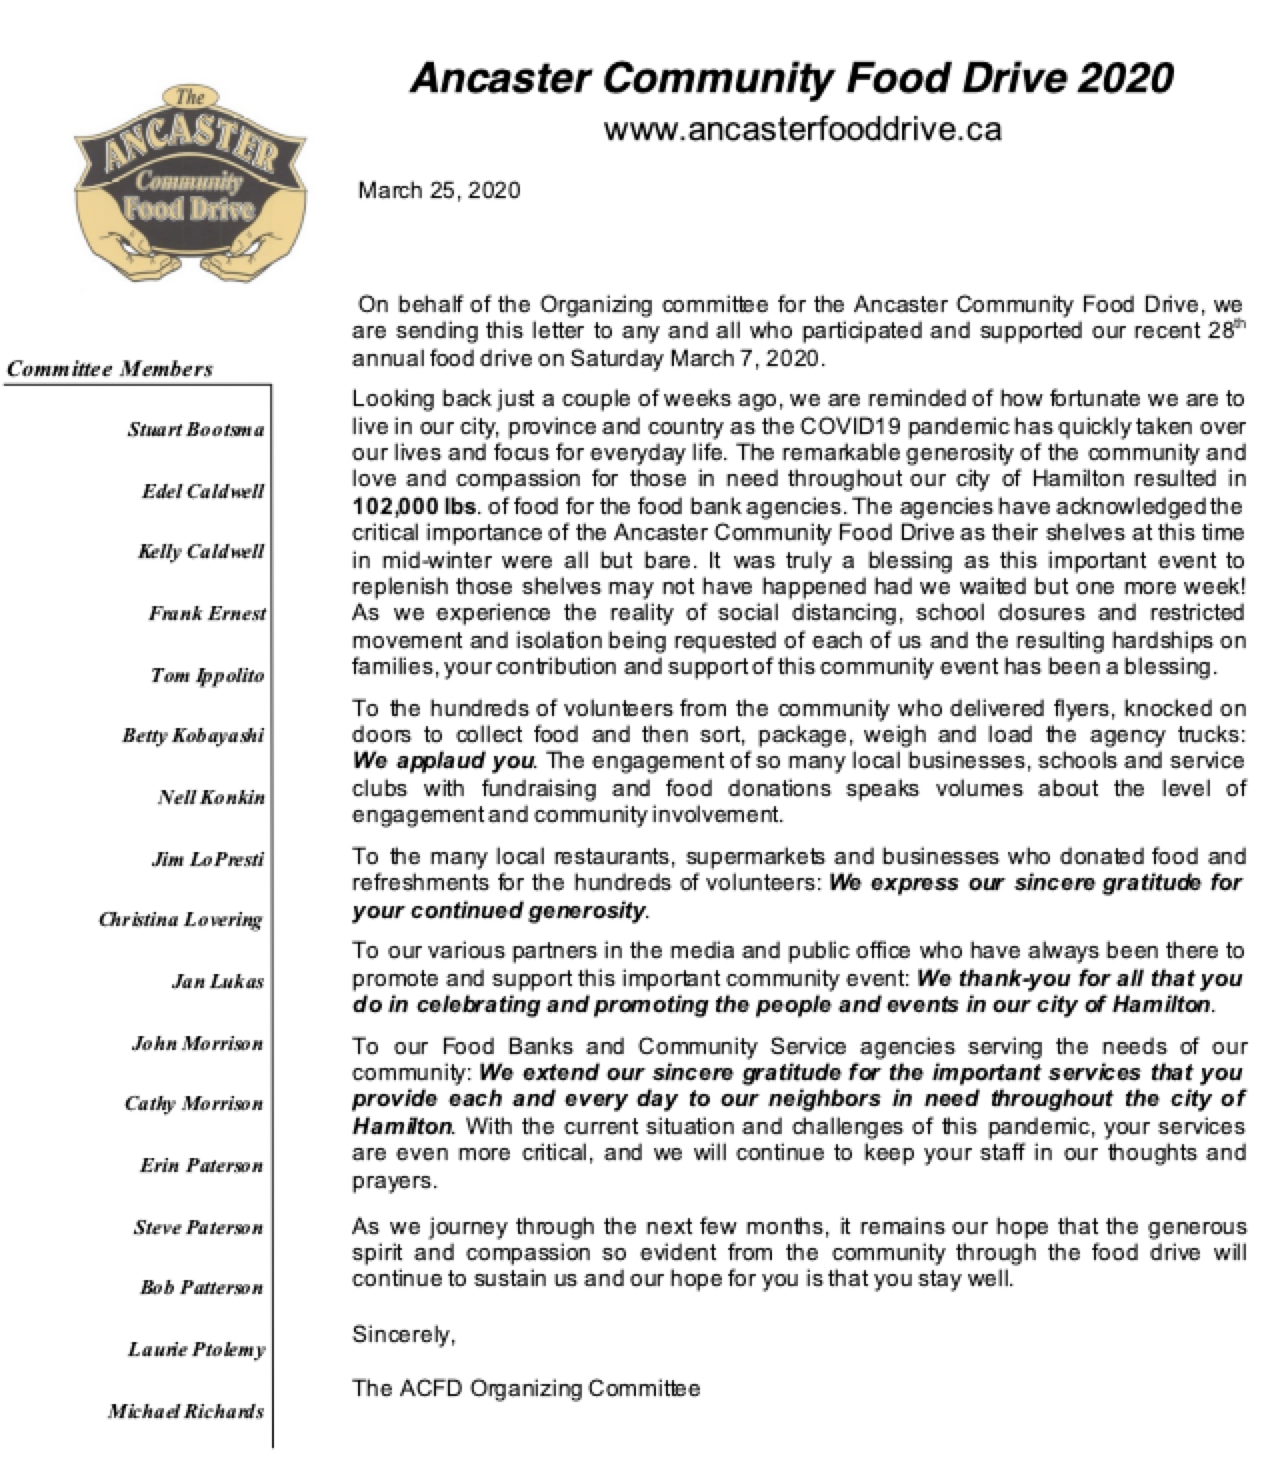 On behalf of the Organizing committee for the Ancaster Community Food Drive, we are sending this letter to any and all who participated and supported our recent 28th annual food drive on Saturday March 7, 2020.   Looking back just a couple of weeks ago, we are reminded of how fortunate we are to live in our city, province and country as the COVID19 pandemic has quickly taken over our lives and focus for everyday life. The remarkable generosity of the community and love and compassion for those in need throughout our city of Hamilton resulted in 102,000 lbs. of food for the food bank agencies. The agencies have acknowledged the critical importance of the Ancaster Community Food Drive as their shelves at this time in mid-winter were all but bare. It was truly a blessing as this important event to replenish those shelves may not have happened had we waited but one more week! As we experience the reality of social distancing, school closures and restricted movement and isolation being requested of each of us and the resulting hardships on families, your contribution and support of this community event has been a blessing.  To the hundreds of volunteers from the community who delivered flyers, knocked on doors to collect food and then sort, package, weigh and load the agency trucks:            We applaud you. The engagement of so many local businesses, schools and service clubs with fundraising and food donations speaks volumes about the level of engagement and community involvement.   To the many local restaurants, supermarkets and businesses who donated food and refreshments for the hundreds of volunteers: We express our sincere gratitude for your continued generosity.   To our various partners in the media and public office who have always been there to promote and support this important community event: We thank-you for all that you do in celebrating and promoting the people and events in our city of Hamilton.   To our Food Banks and Community Service agencies serving the needs of our community: We extend our sincere gratitude for the important services that you provide each and every day to our neighbors in need throughout the city of Hamilton. With the current situation and challenges of this pandemic, your services are even more critical, and we will continue to keep your staff in our thoughts and prayers.   As we journey through the next few months, it remains our hope that the generous spirit and compassion so evident from the community through the food drive will continue to sustain us and our hope for you is that you stay well.   Sincerely,    The ACFD Organizing Committee